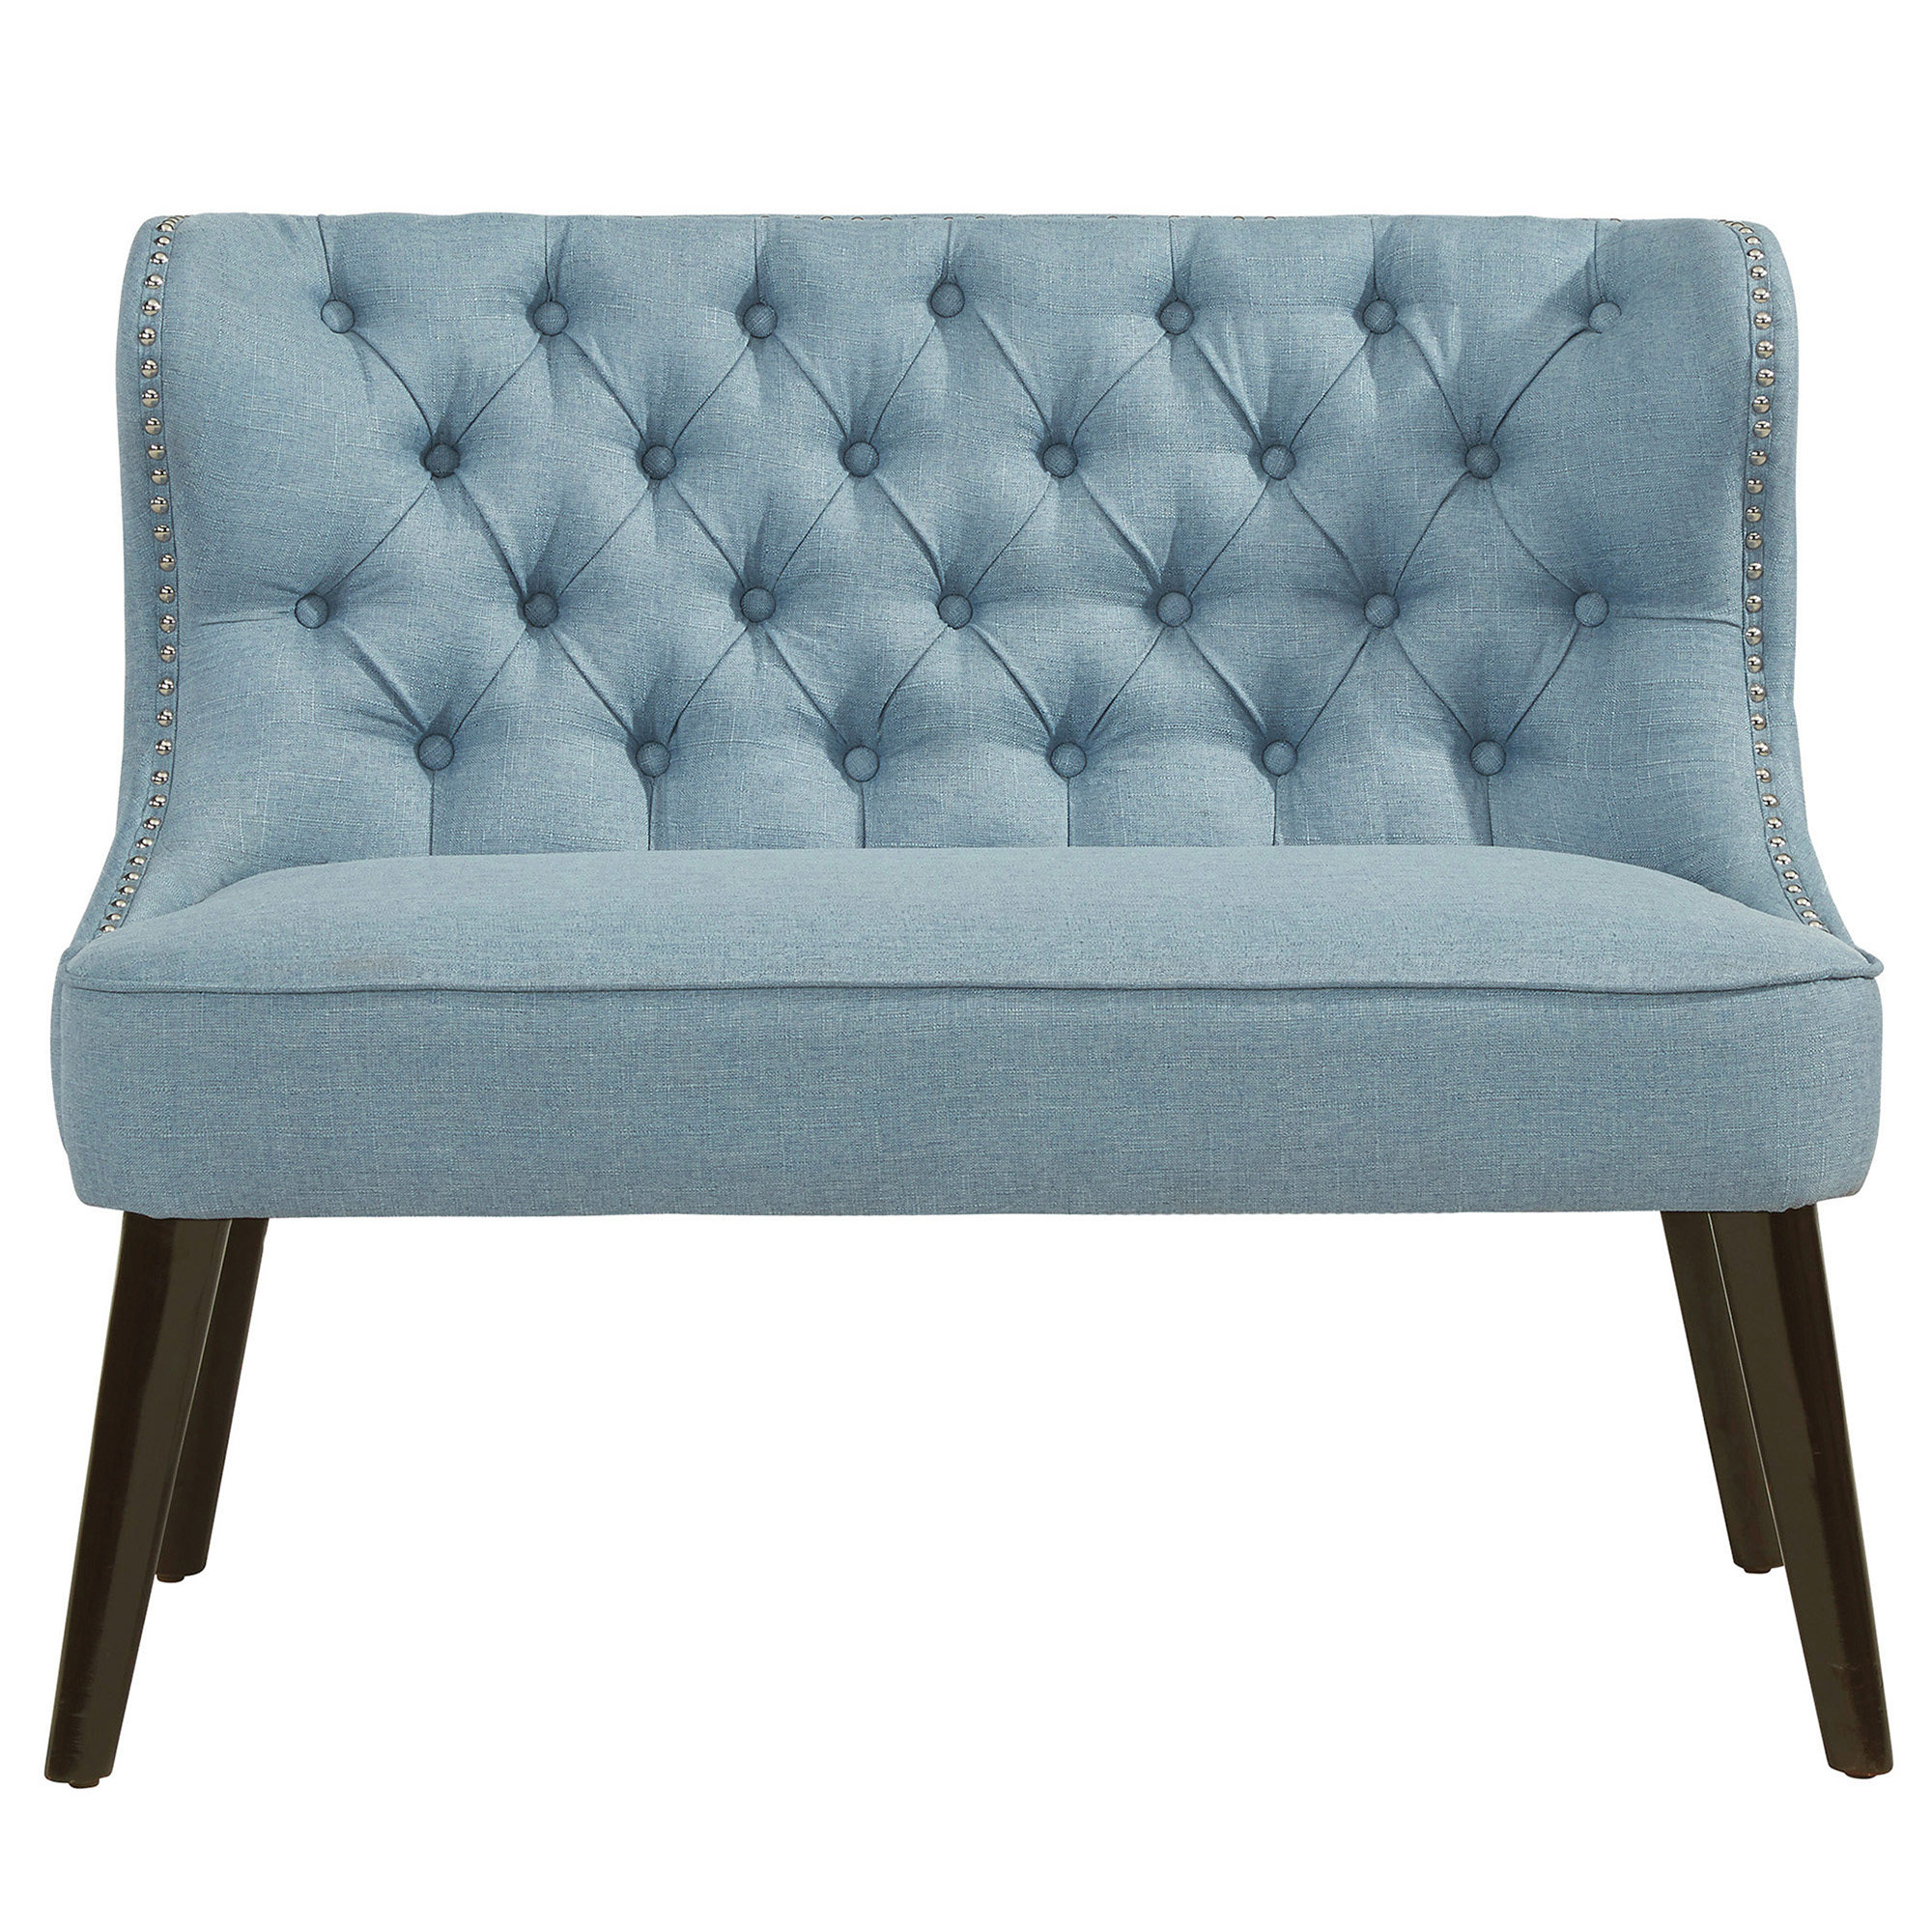 BISCOTTI-DOUBLE BENCH-LIGHT BLUE, 841173028138, Benches by Midha Furniture to Brampton, Mississauga, Etobicoke, Toronto, Scraborough, Caledon, Oakville, Markham, Ajax, Pickering, Oshawa, Richmondhill, Kitchener, Hamilton and GTA area